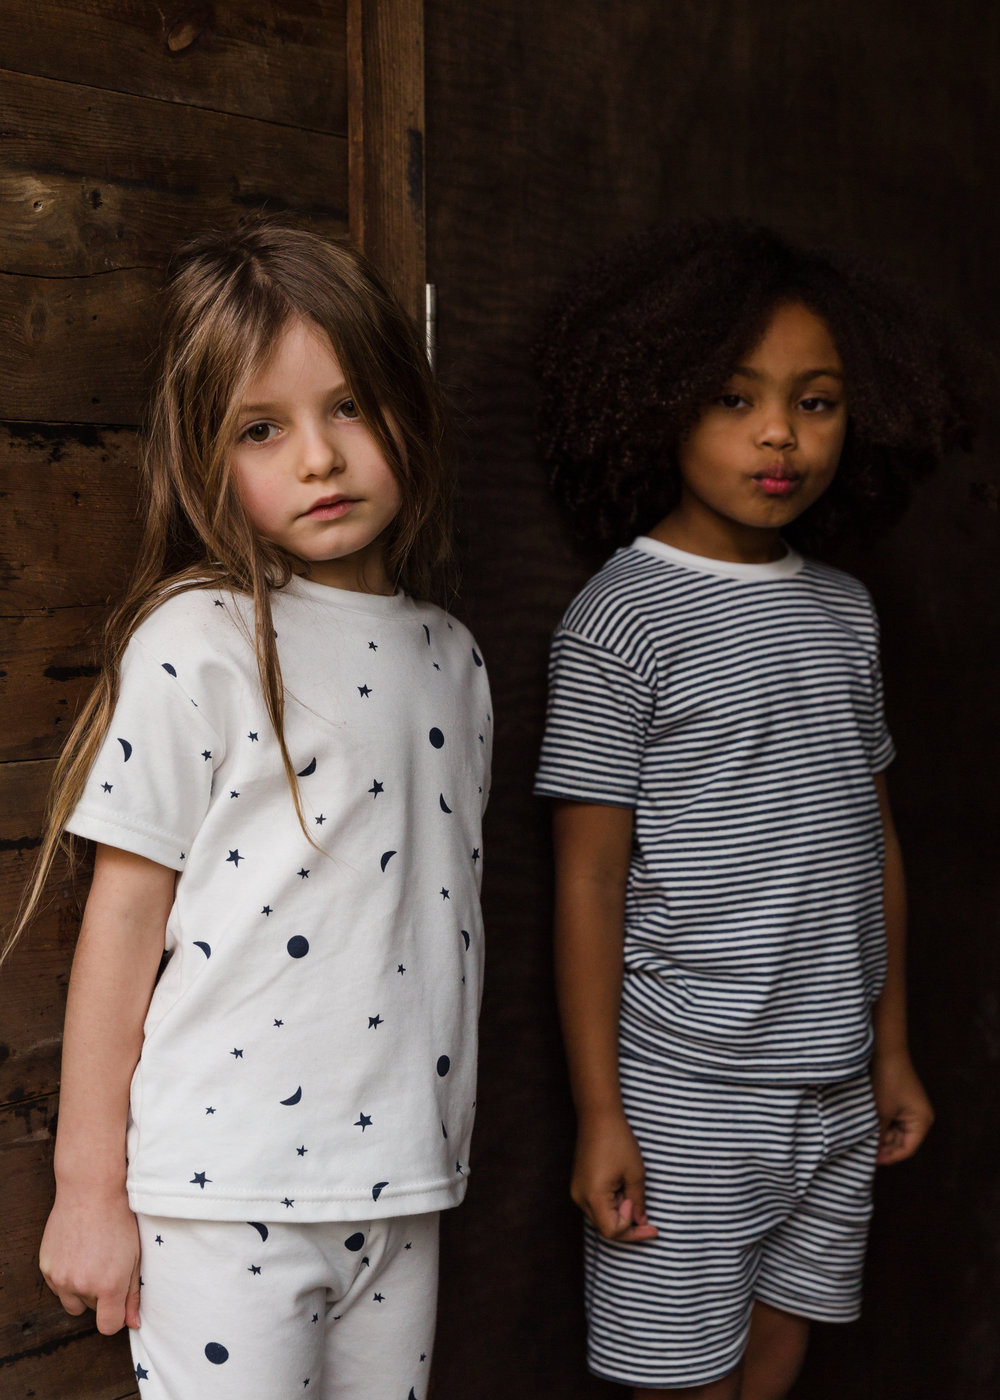 With 10 years' experience in the fashion industry, creative directing and designing loungewear for British heritage brands, founder Sophie Woodrow launched Sleepy Doe.   Born in Bath in 2016, Sleepy Doe provides  timeless printed sleep and loungewear for children aged 0-9 years.  All products are organic or eco with soft with subtle design details, bringing comfort and an effortless style to the mini bedtime wardrobe.   With the all-too familiar experience of having a child who doesn't sleep through the night, Sophie primarily wanted to help give adults the reassurance that their minis can be as comfy as possible when it comes to bedtime.  With her design experience and knowing the importance of achieving quality alongside style,  the super-soft fabrics are hand-picked for comfort, maximising chances of the good night's sleep every parent hopes for.   With Sophie's love of childrenswear, interiors and print design, Sleepy Doe's collections are classic, whilst injecting simple hand-drawn prints in friendly colours that sit happily in any home. Each season Sophie likes to offer a girl print for those tiny humans that love all things pretty alongside unisex options that siblings can share.   All methods of manufacturing are sustainable and ethical reflecting the standards of the whole brand. No harmful dyes are used in the printing method and all products are printed on cotton ecologically sourced from British manufactures.  All products are designed and made in the UK , supporting independent factories and businesses, hurrah!